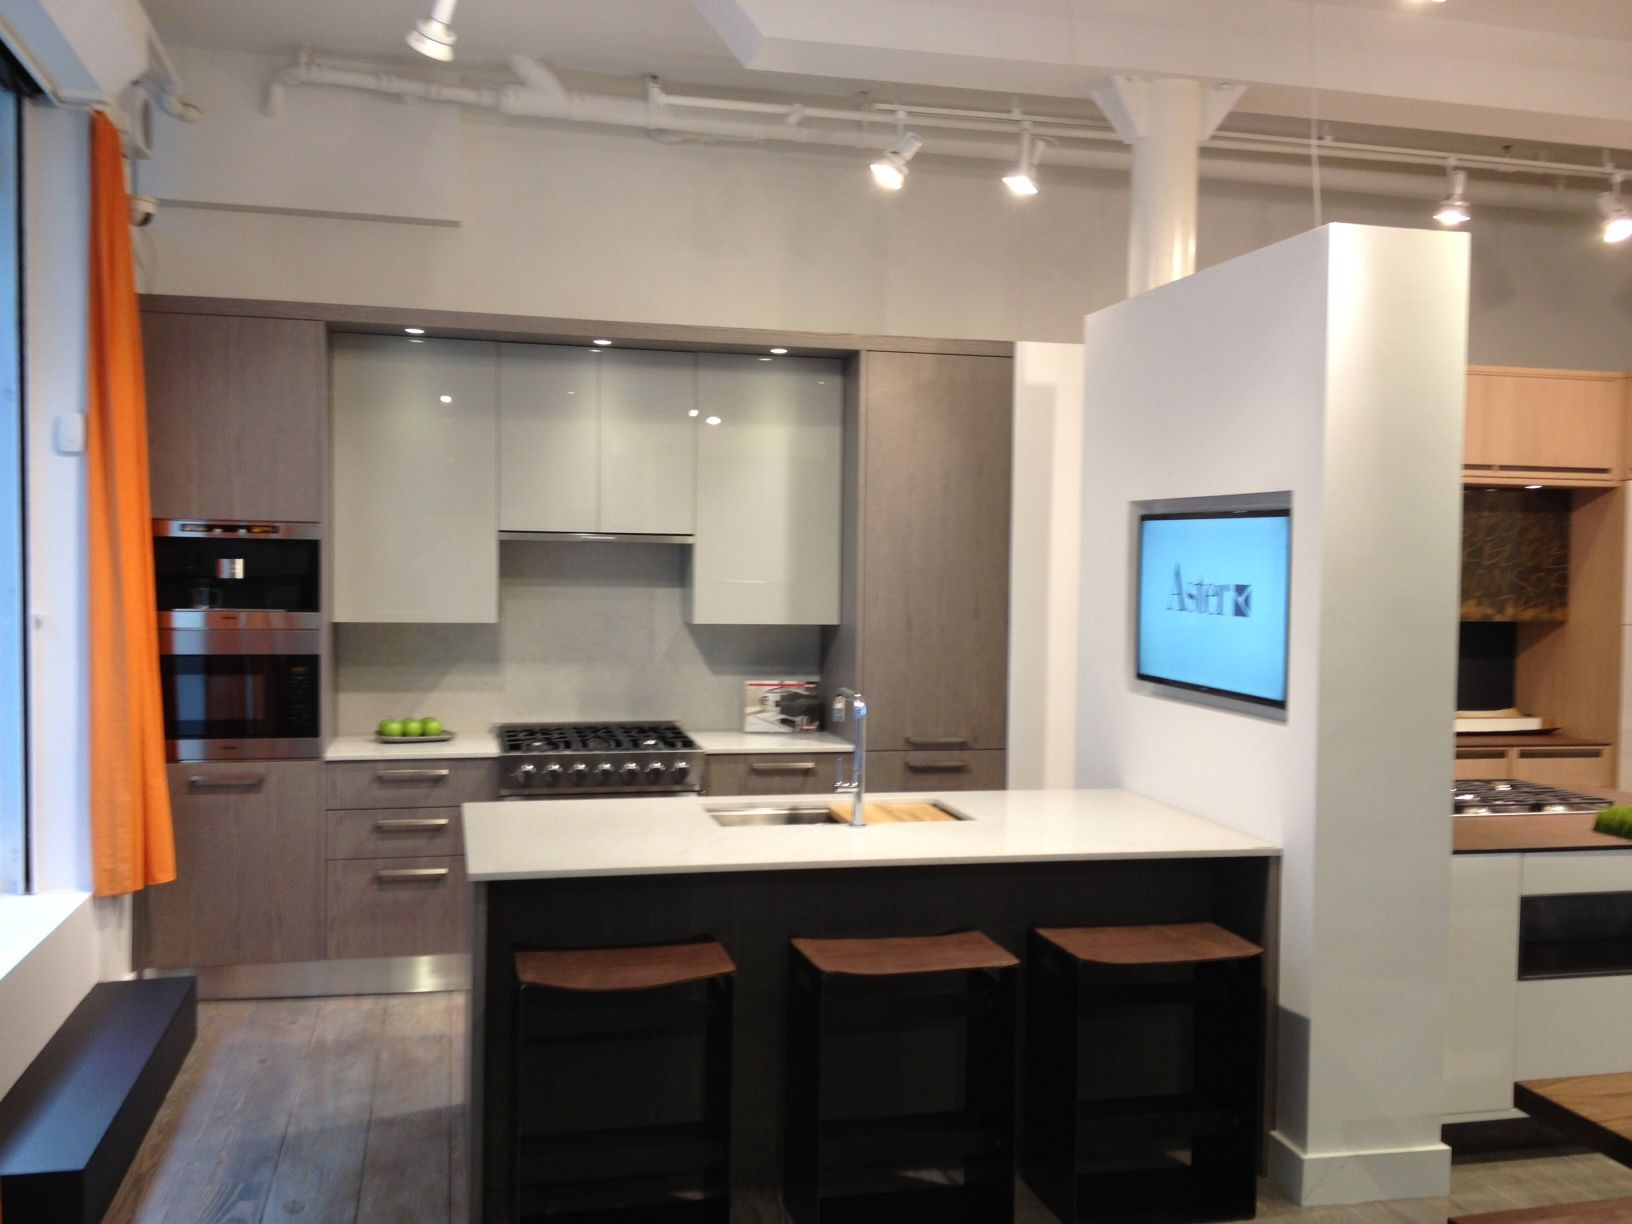 Gray Veneer Kitchen At Urban Homes Showroom In Nyc  Contemporary Inspiration Modern Kitchen Cabinets Nyc Decorating Design